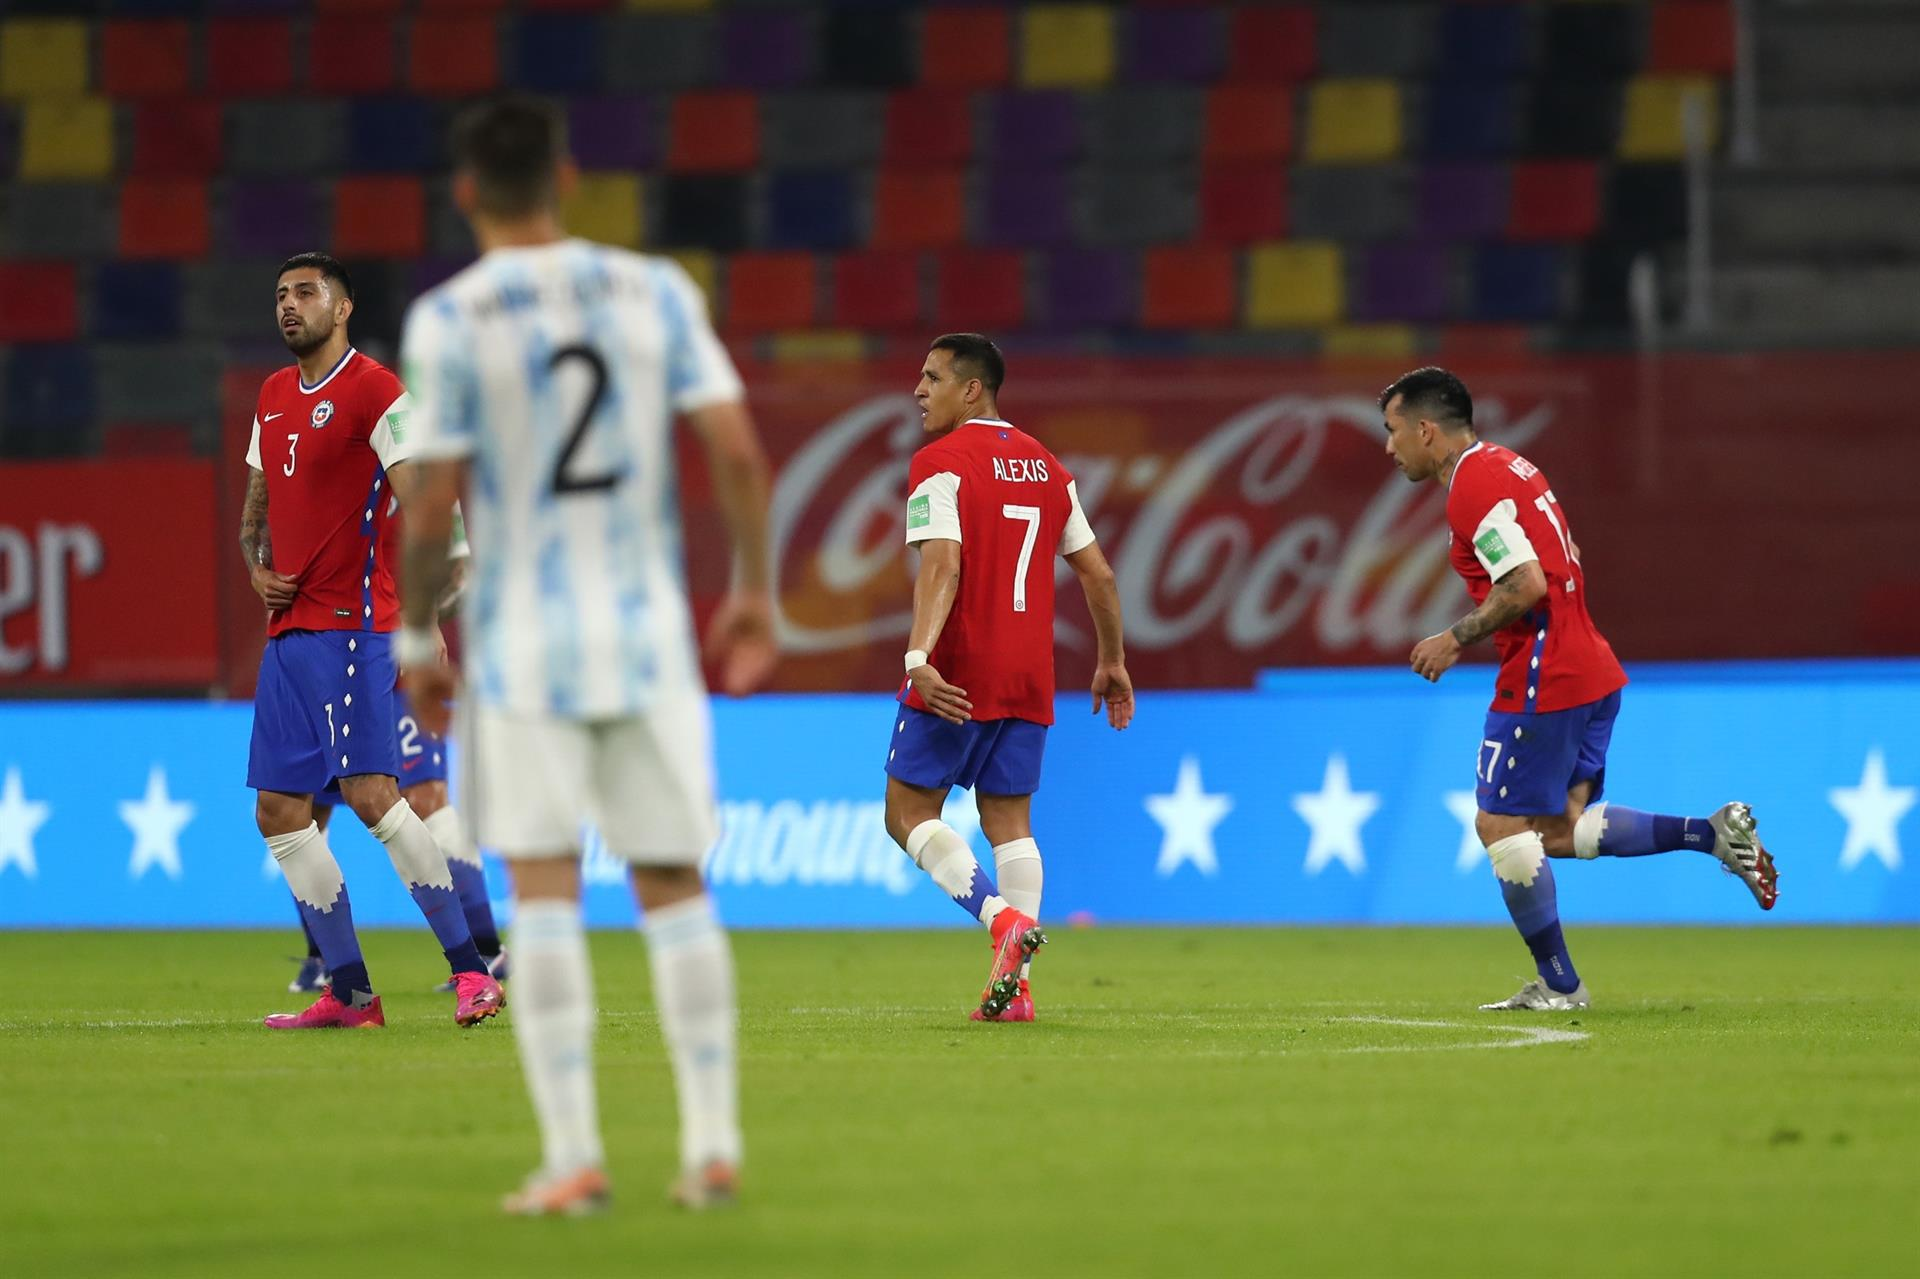 Argentina Chile match report